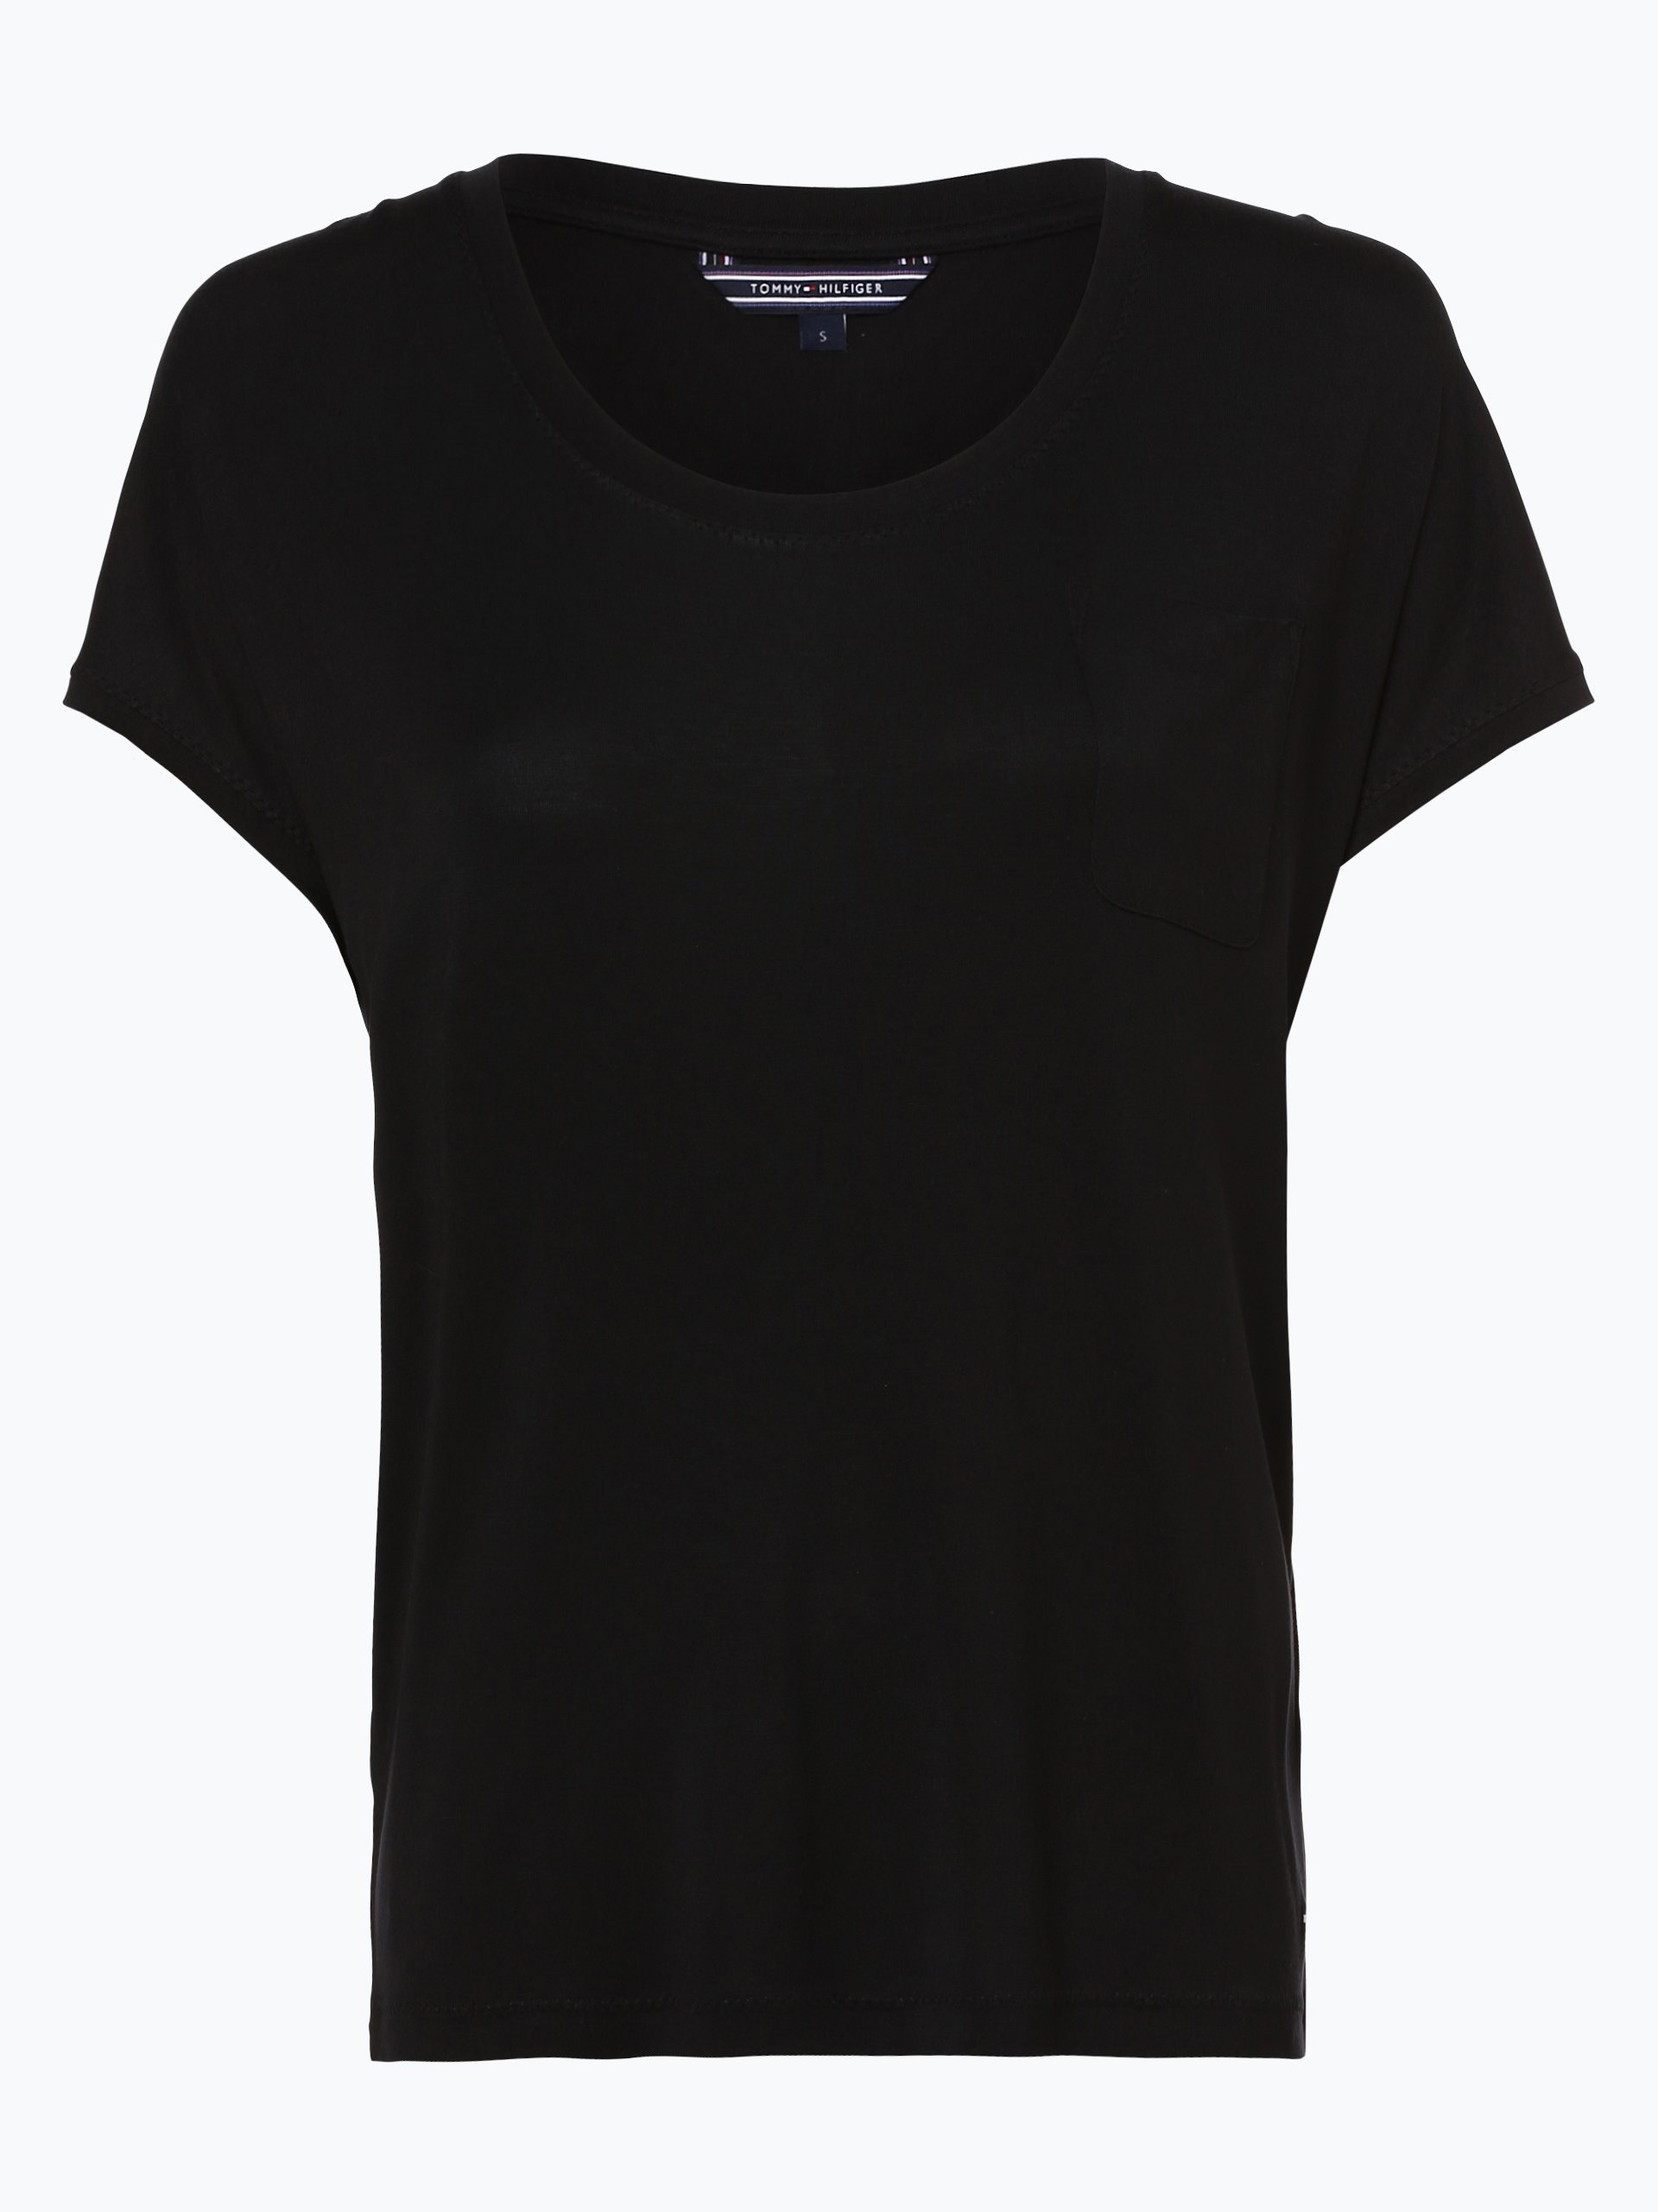 tommy hilfiger damen t shirt draser schwarz uni online. Black Bedroom Furniture Sets. Home Design Ideas